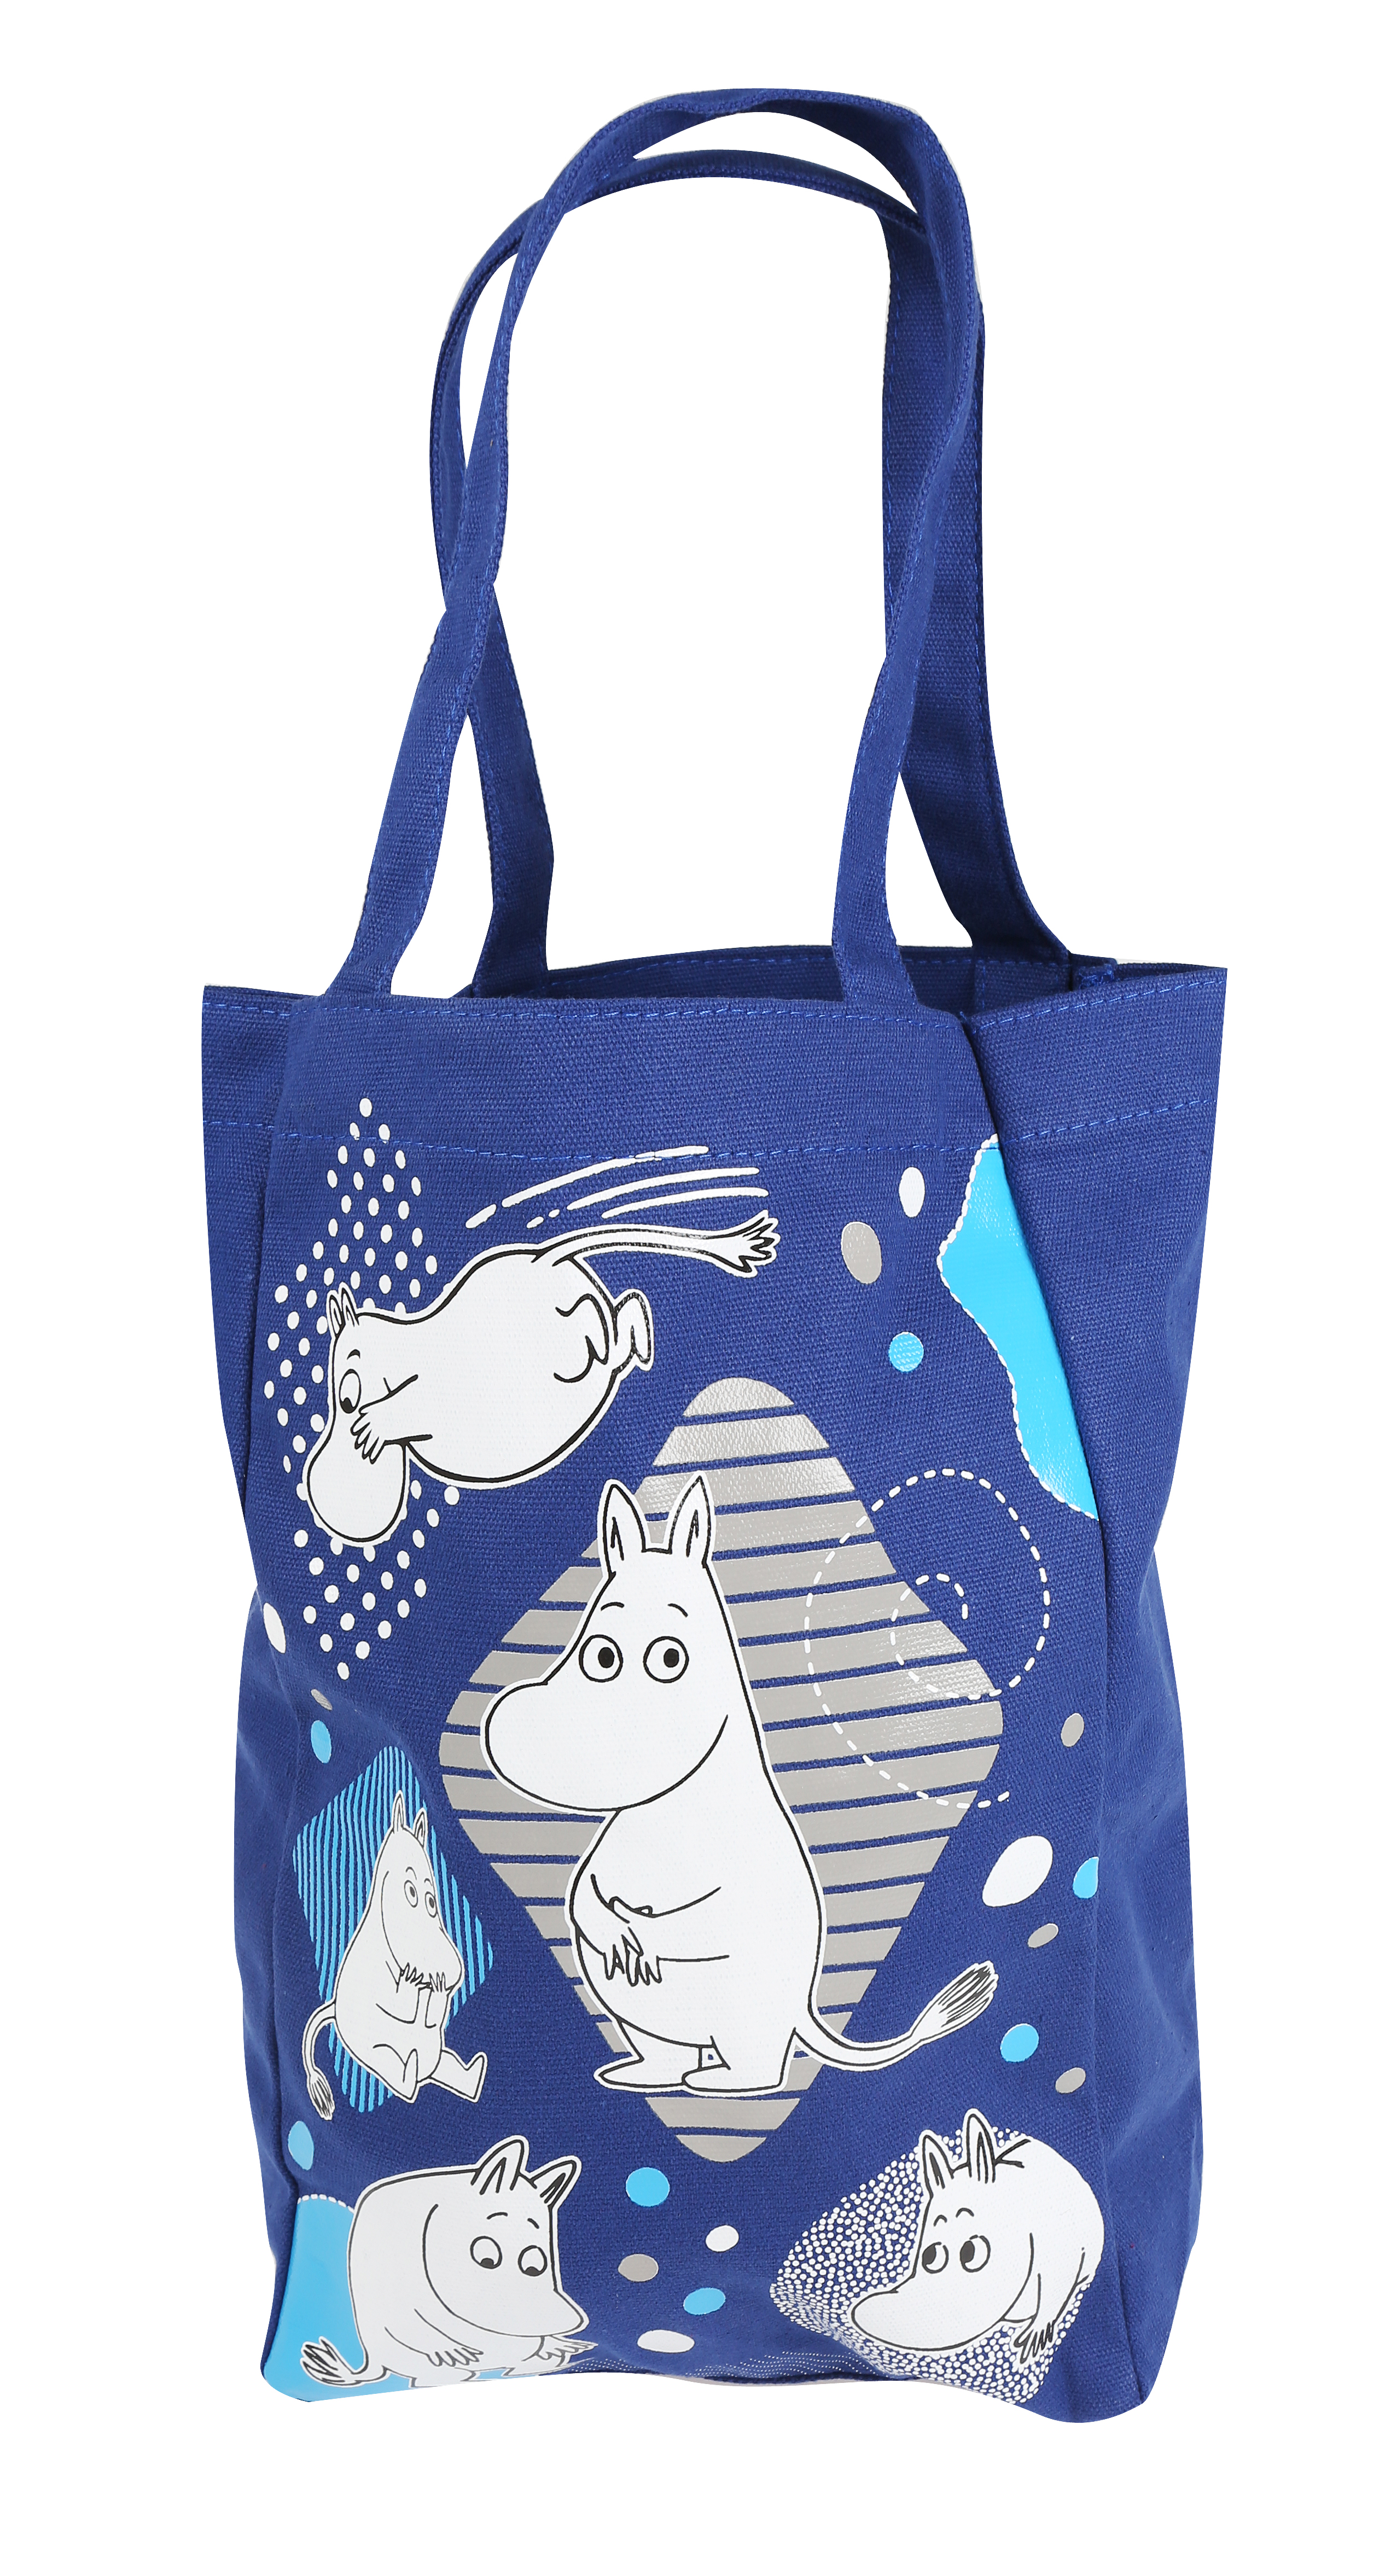 Martinex Shopping bag blue